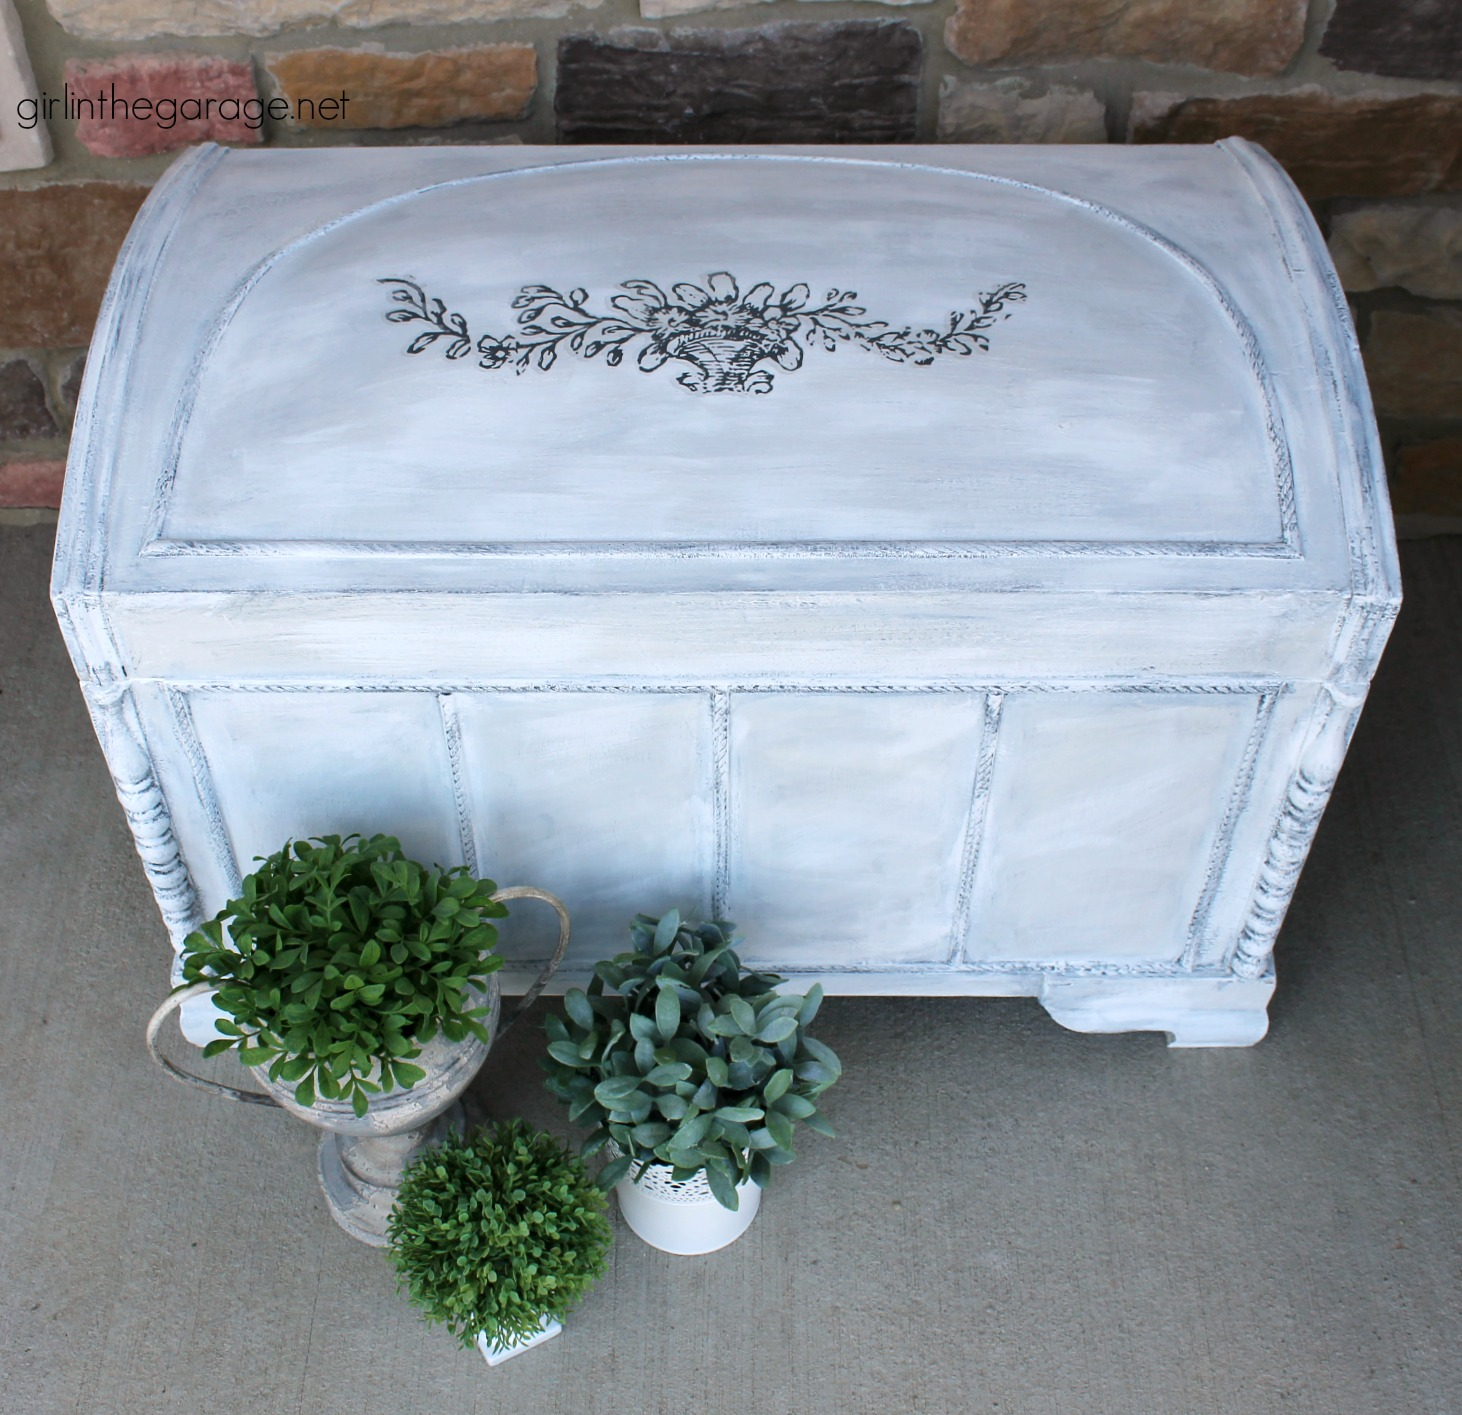 Beautiful painted cedar chest ideas for vintage, antique, Lane, and wooden chests. DIY painted furniture ideas by Girl in the Garage